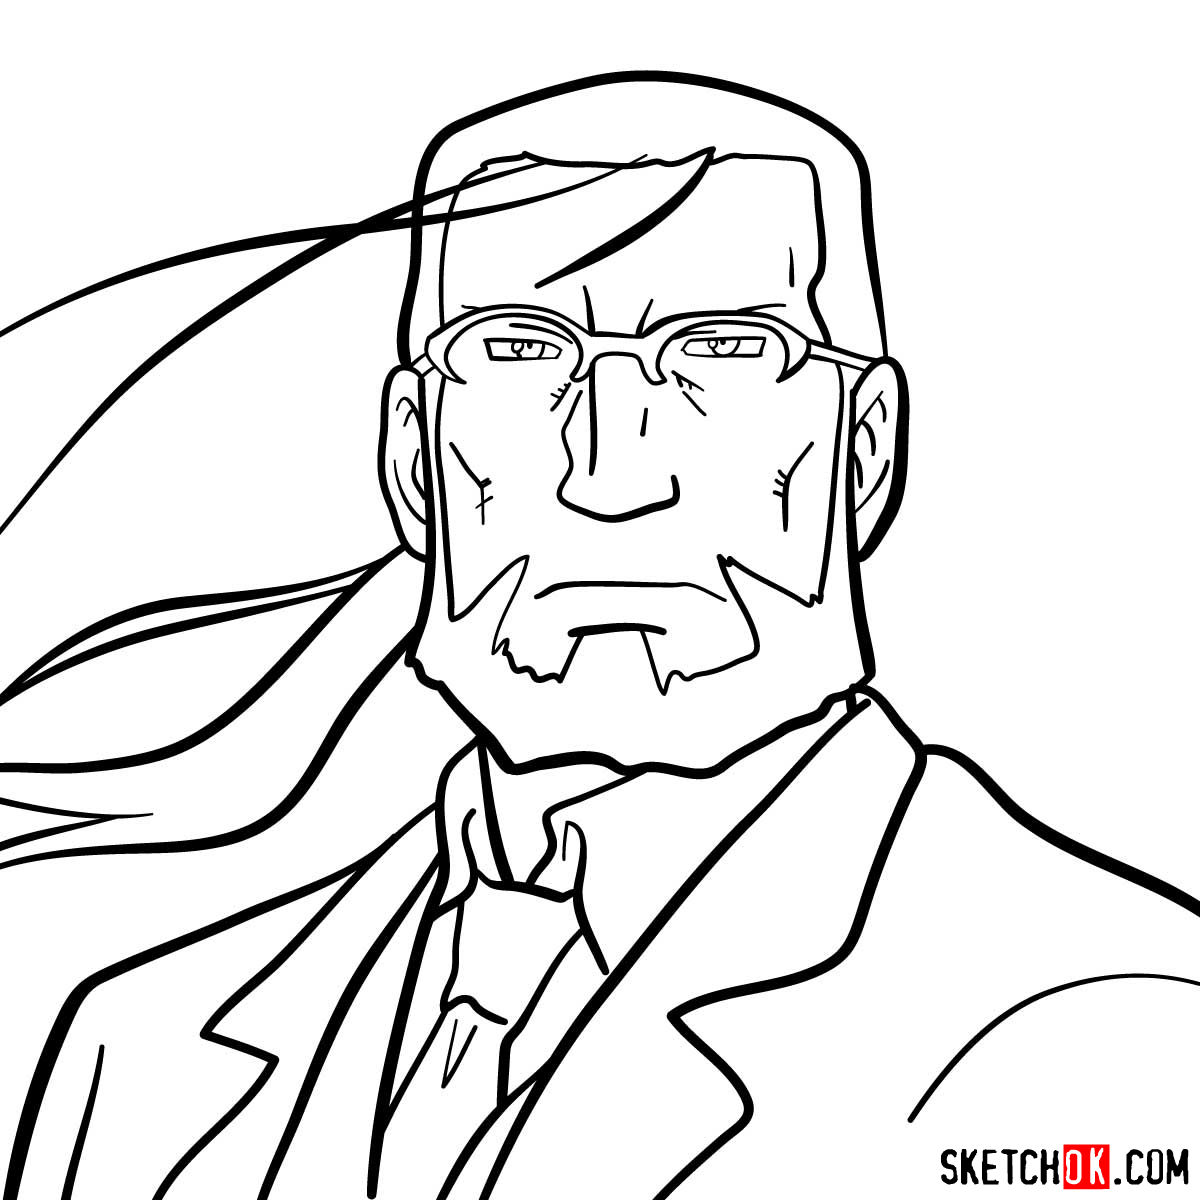 How to draw Van Hohenheim from Fullmetal Alchemist anime - coloring